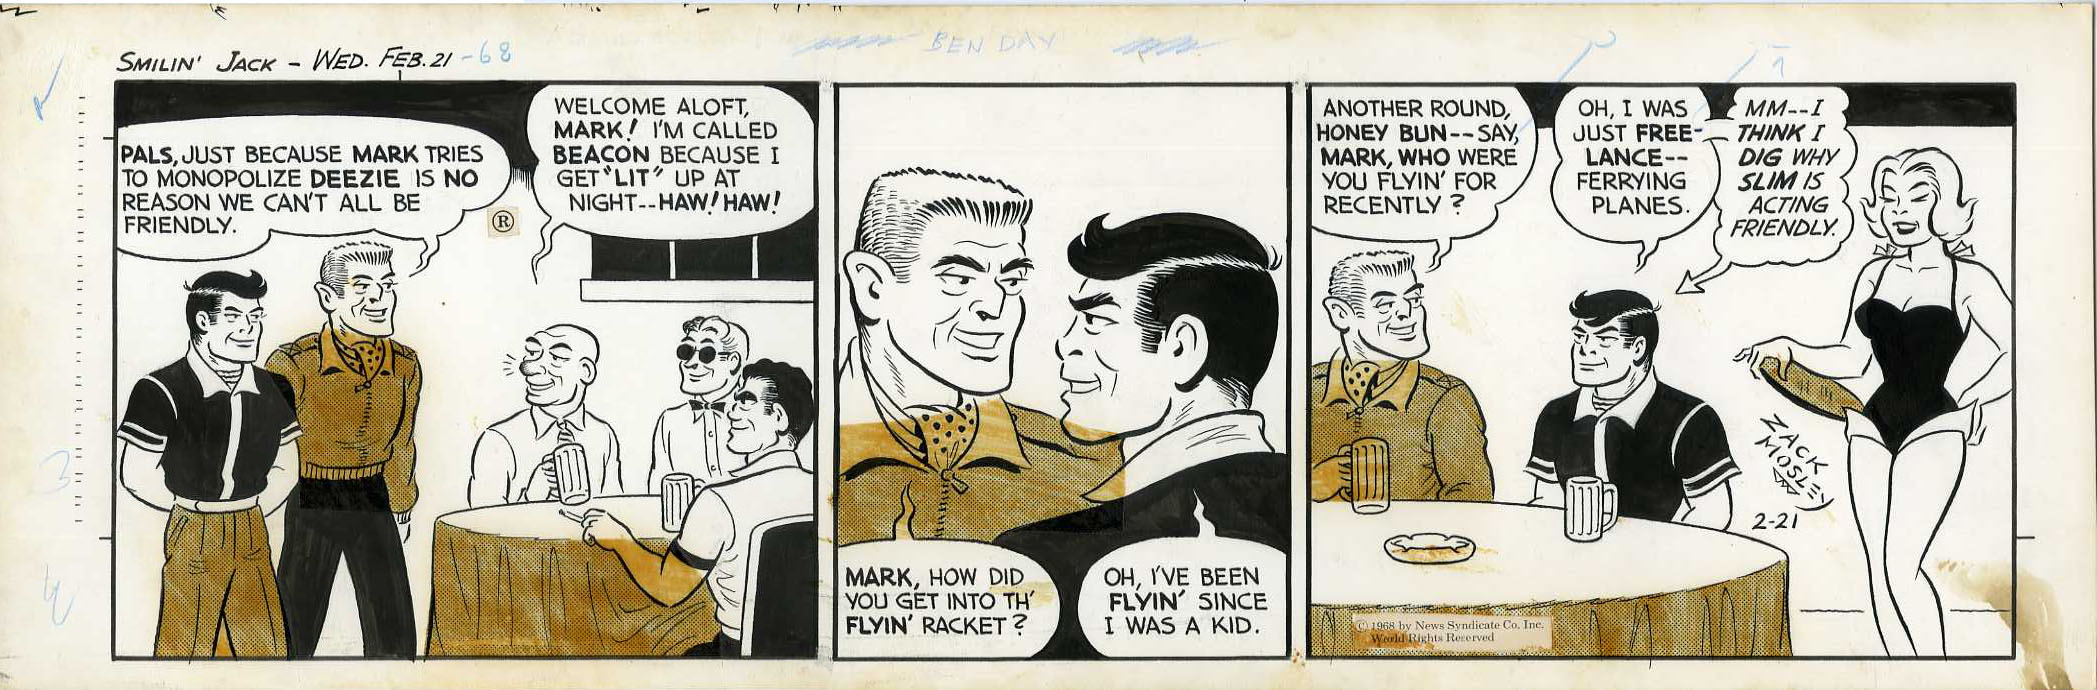 ZACK MOSLEY - SMILIN' JACK DAILY STRIP ORIG ART 2-21-68 ANOTHER ROUND HONEY BUN